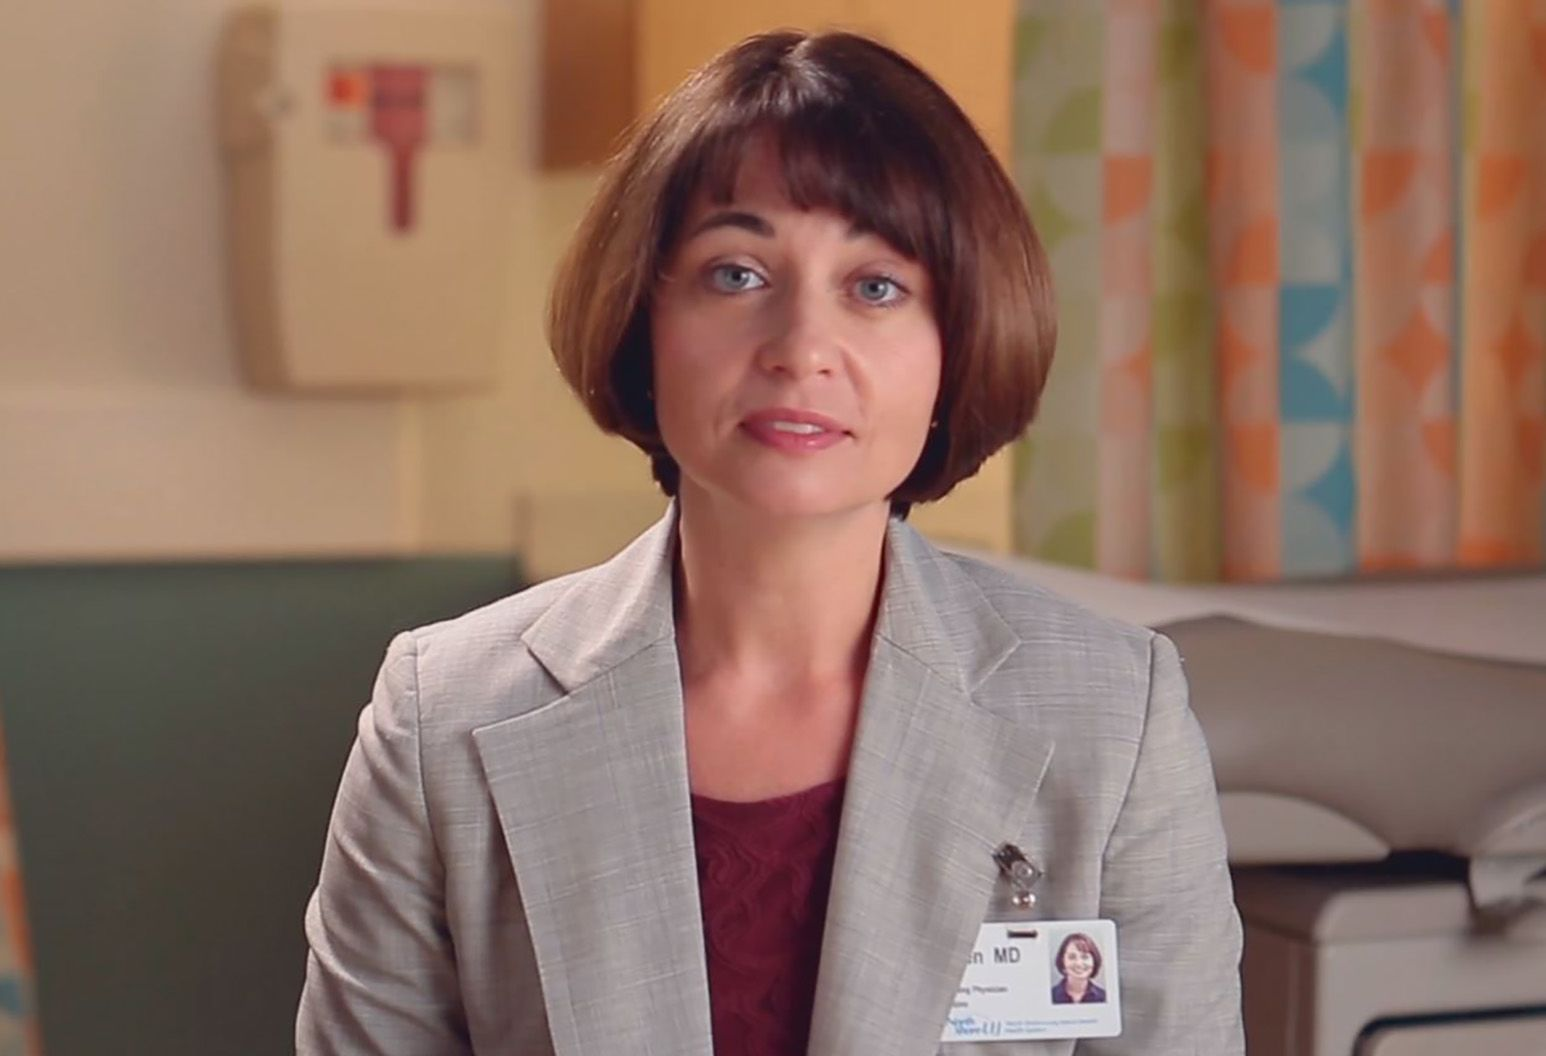 A lady with short brown hair and bangs is in between words. She wears a gray suit jacket and wears a Northwell Health badge.